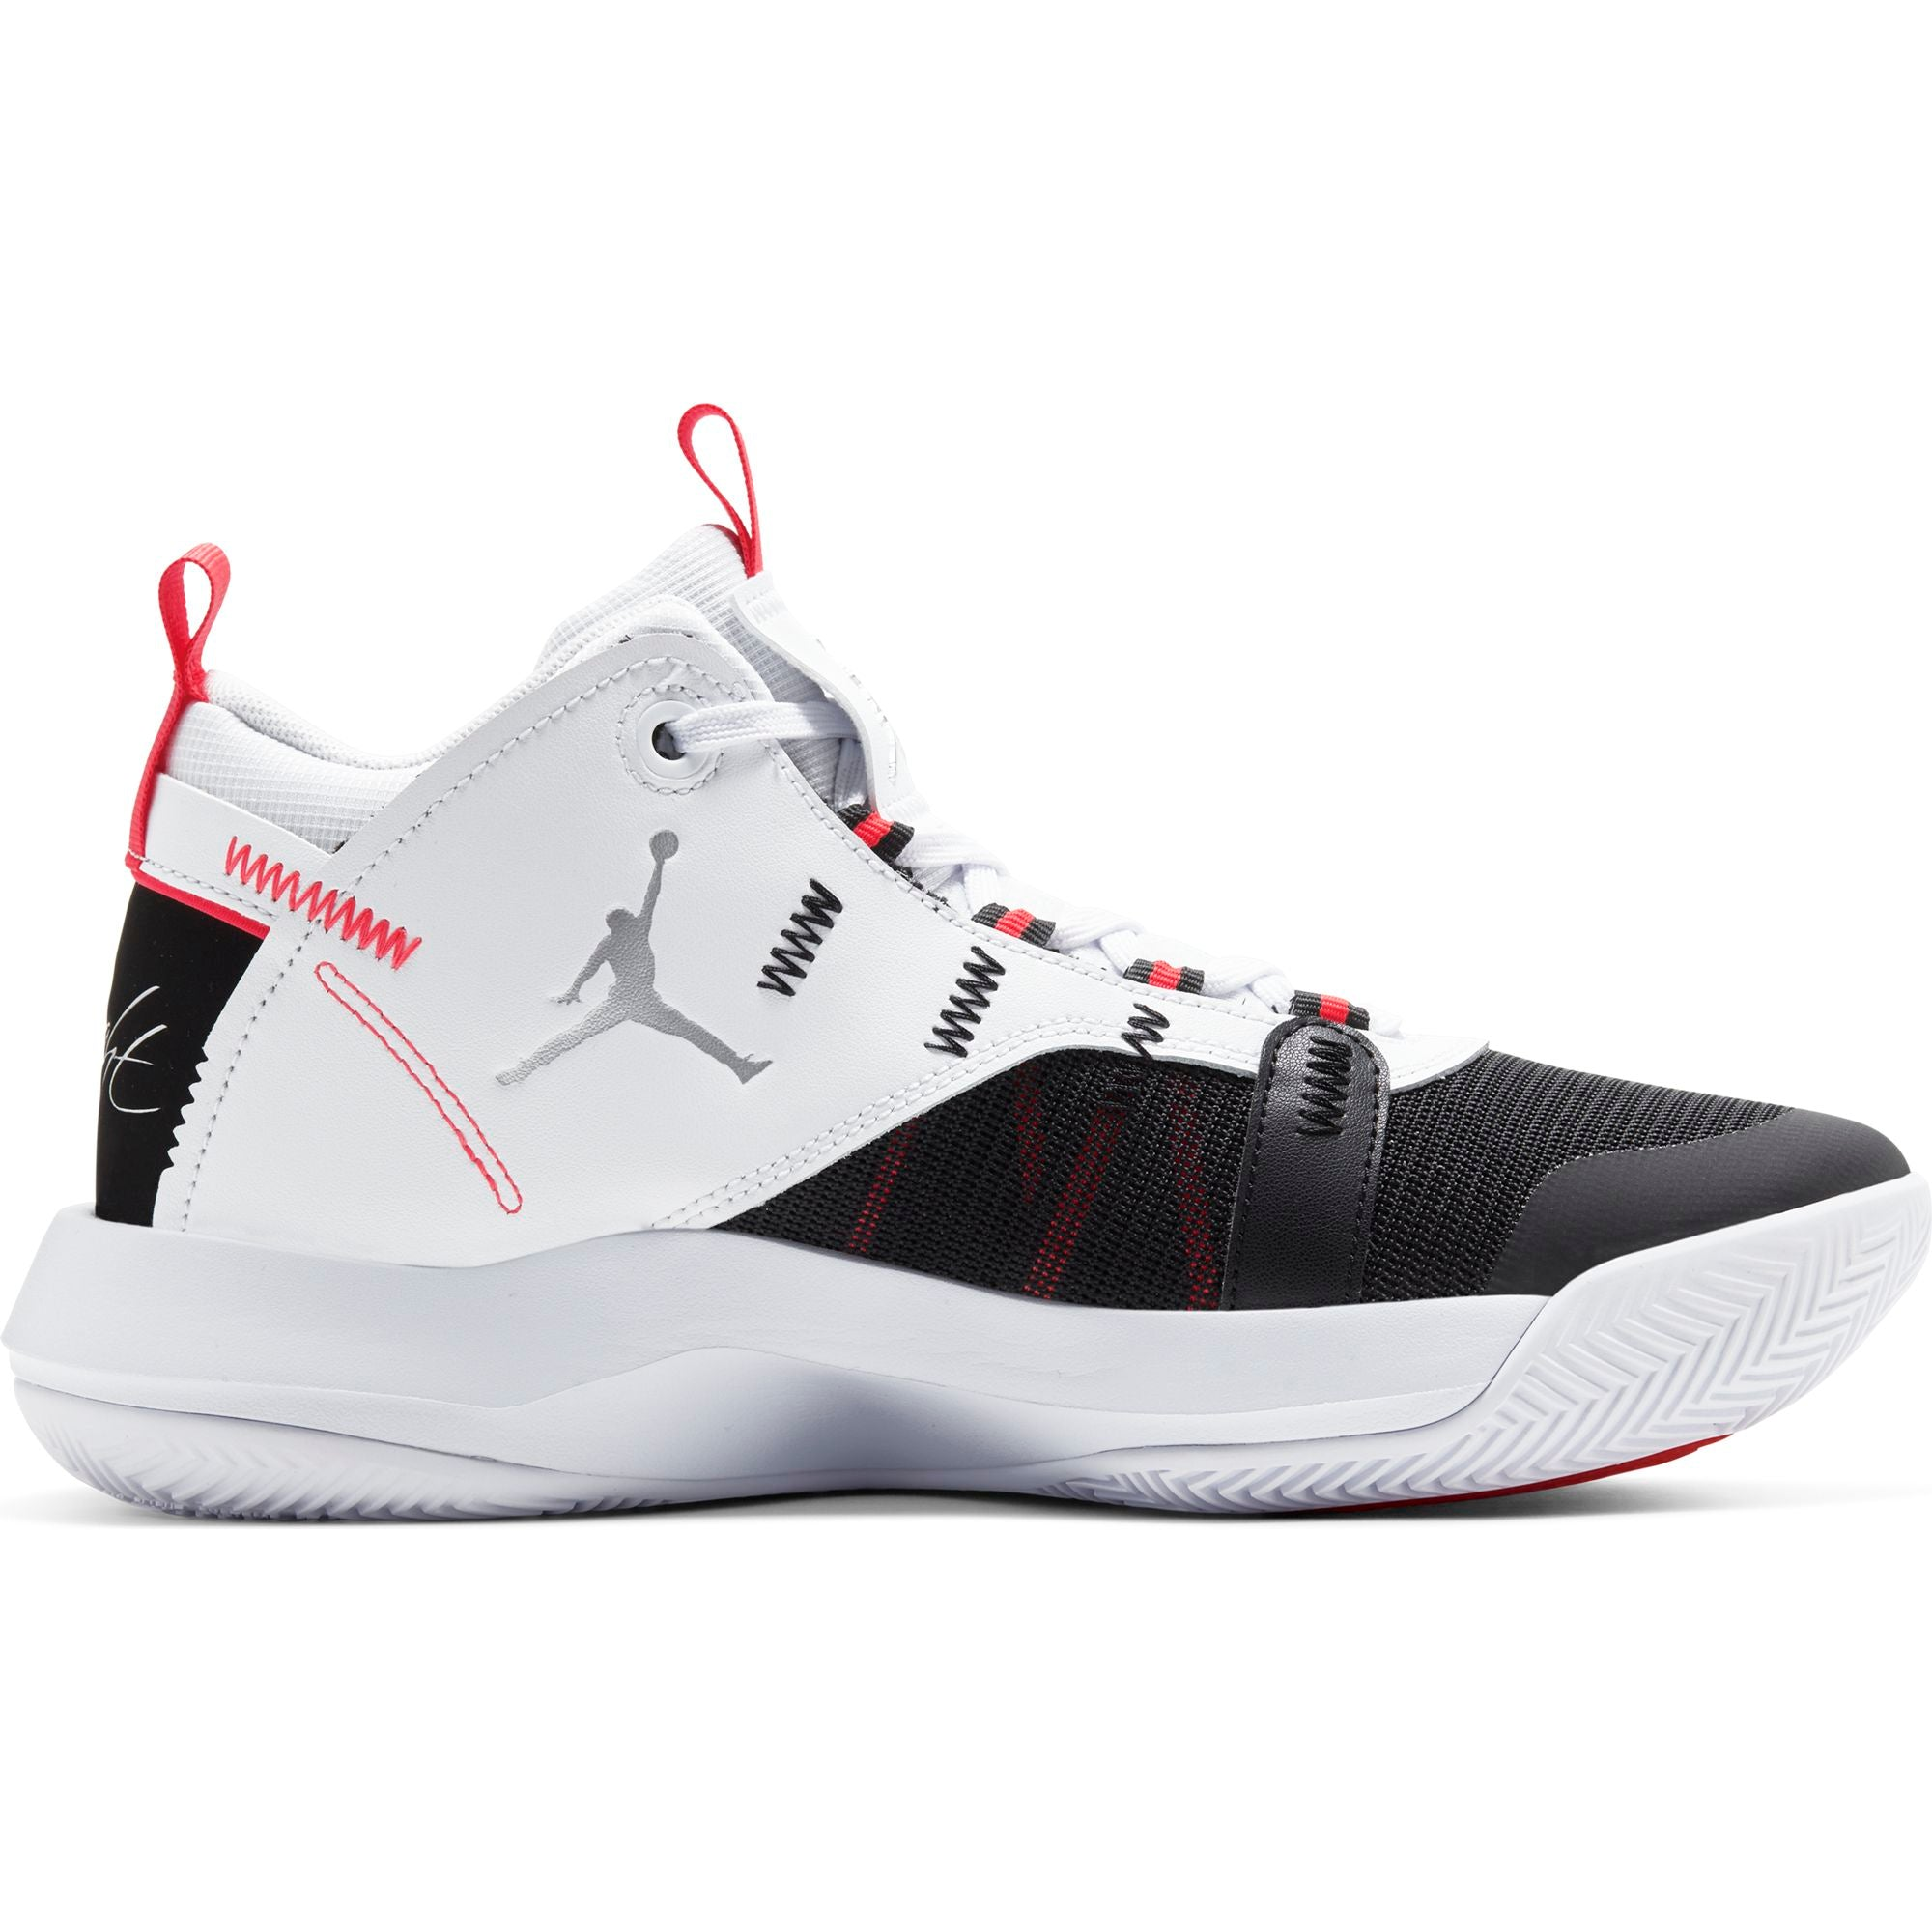 Nike Jordan Jumpman 2020 Basketball Boot/shoe - White/Metallic Silver/Black/Red Orbit